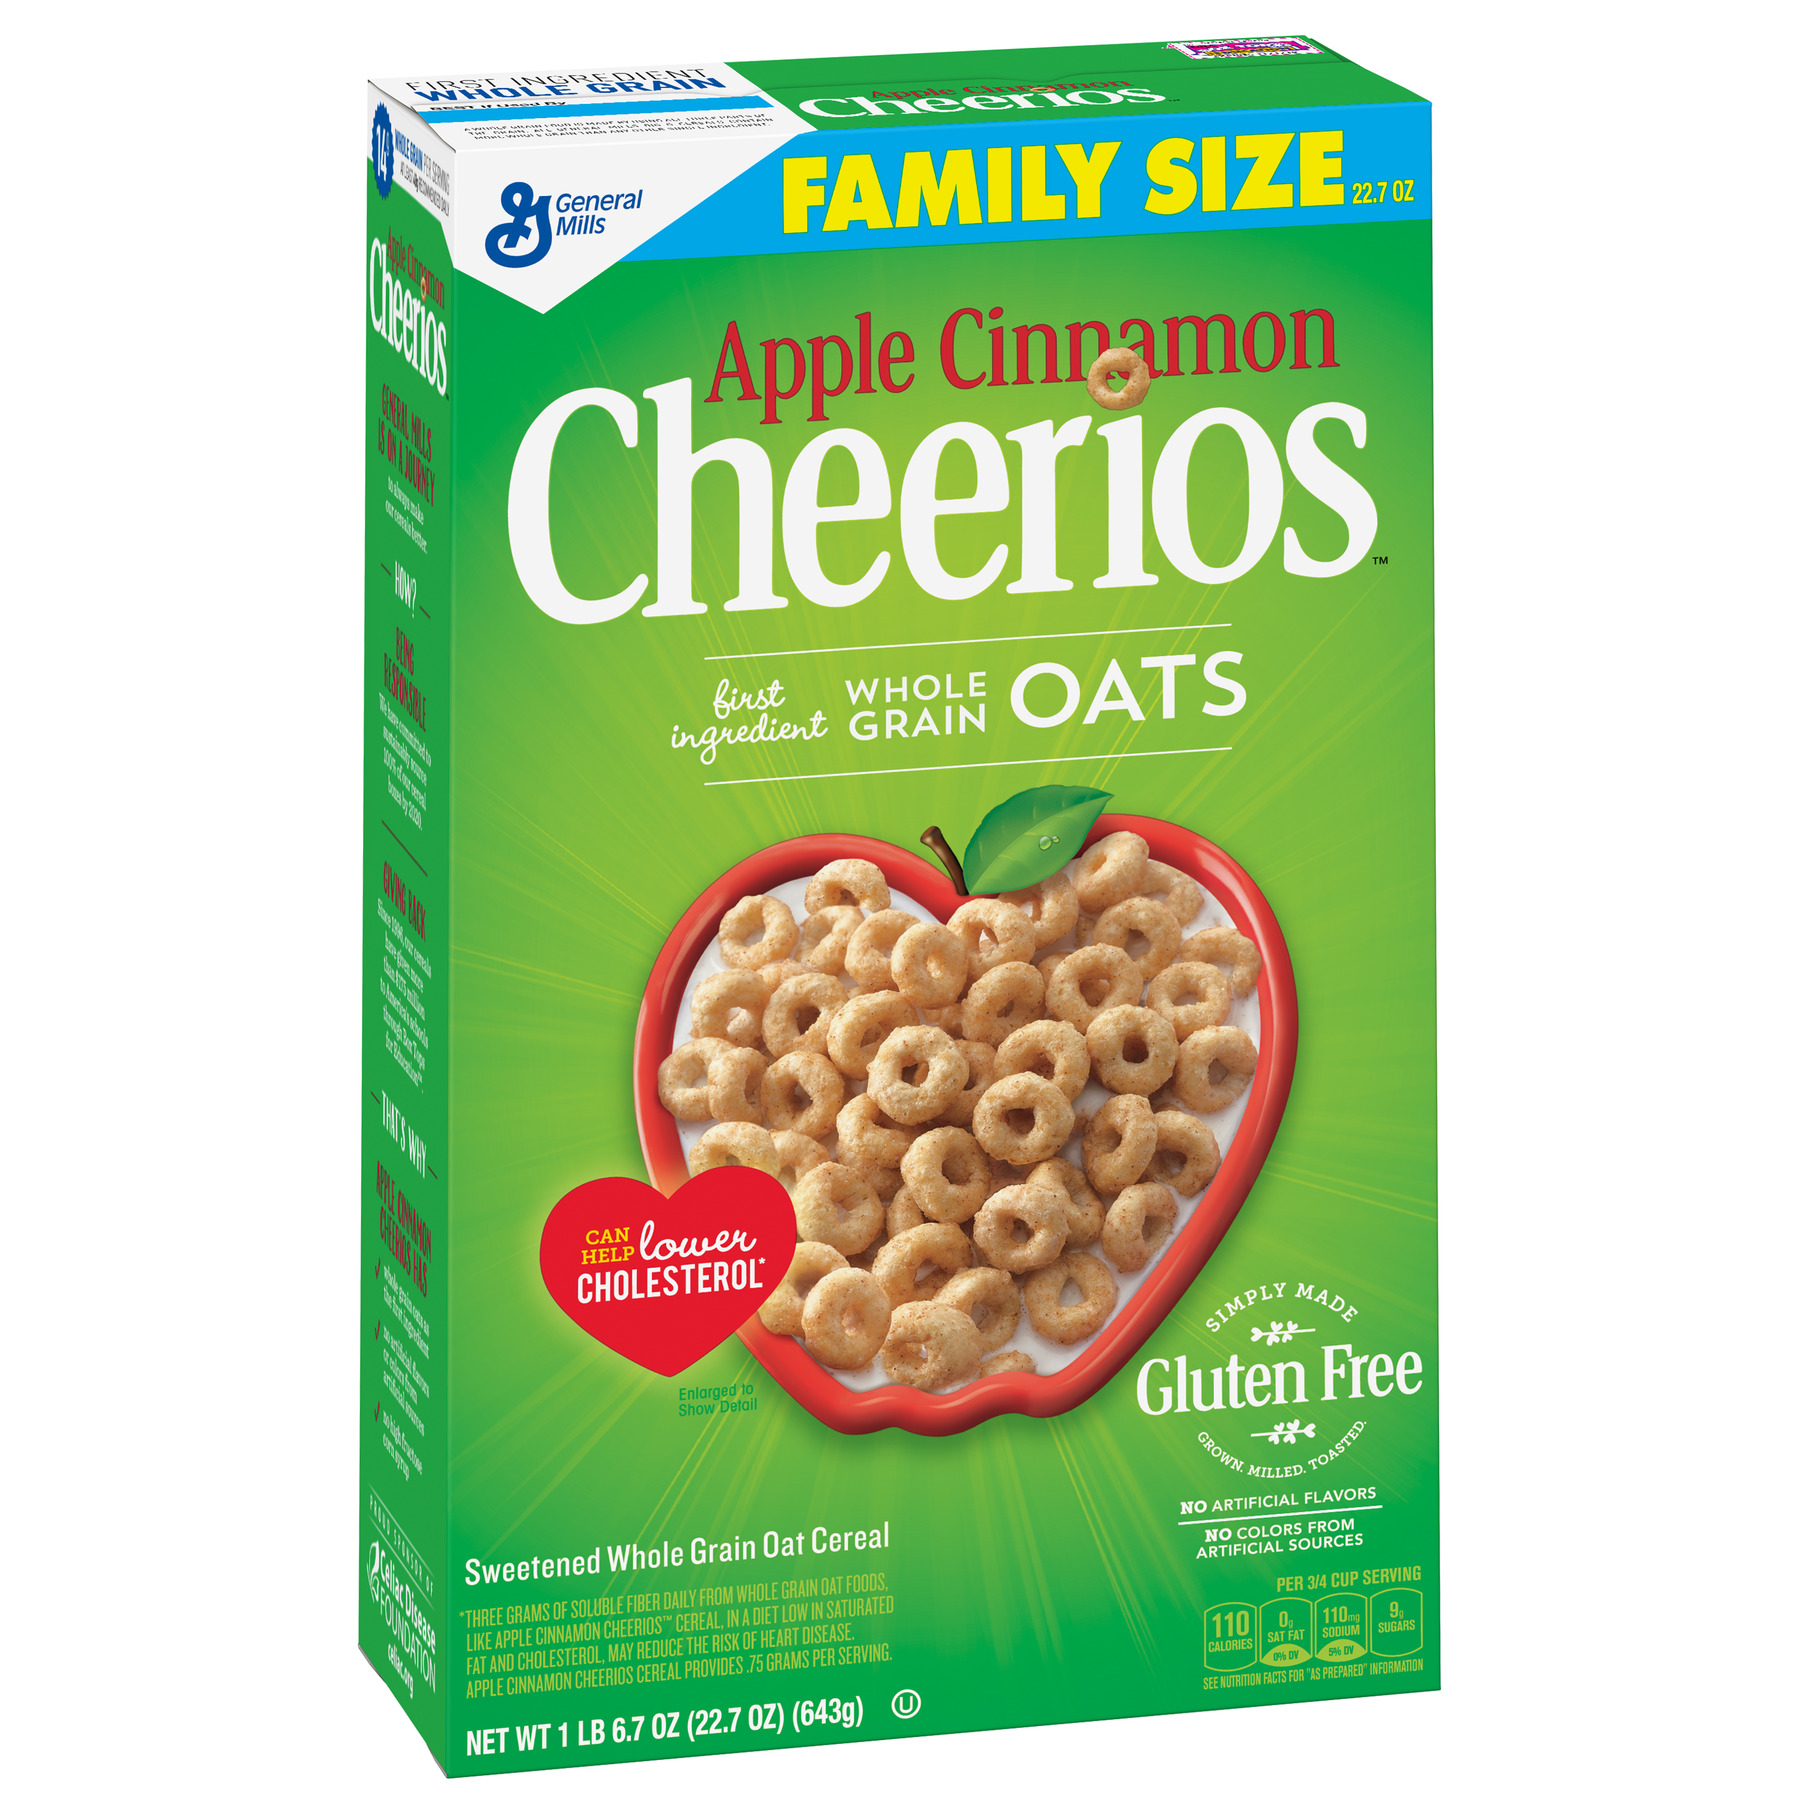 Apple Cinnamon Cheerios Gluten Free Breakfast Cereal, 22.7 oz